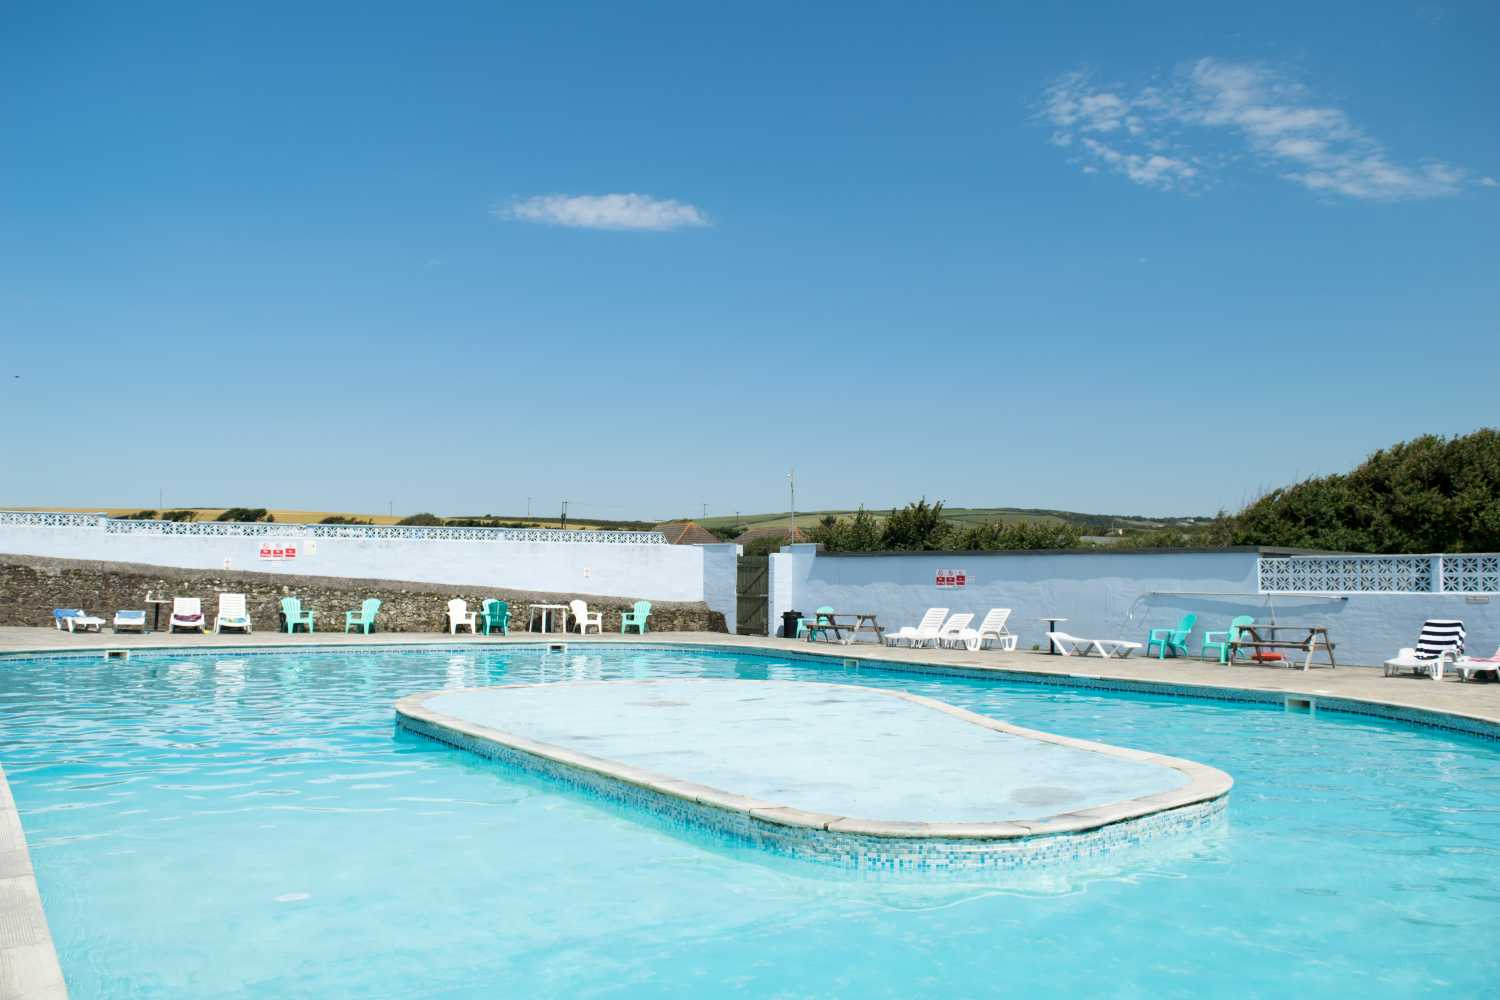 Bude holiday resort cornwall uk ex23 9ee your parks - Campsites with swimming pools near me ...